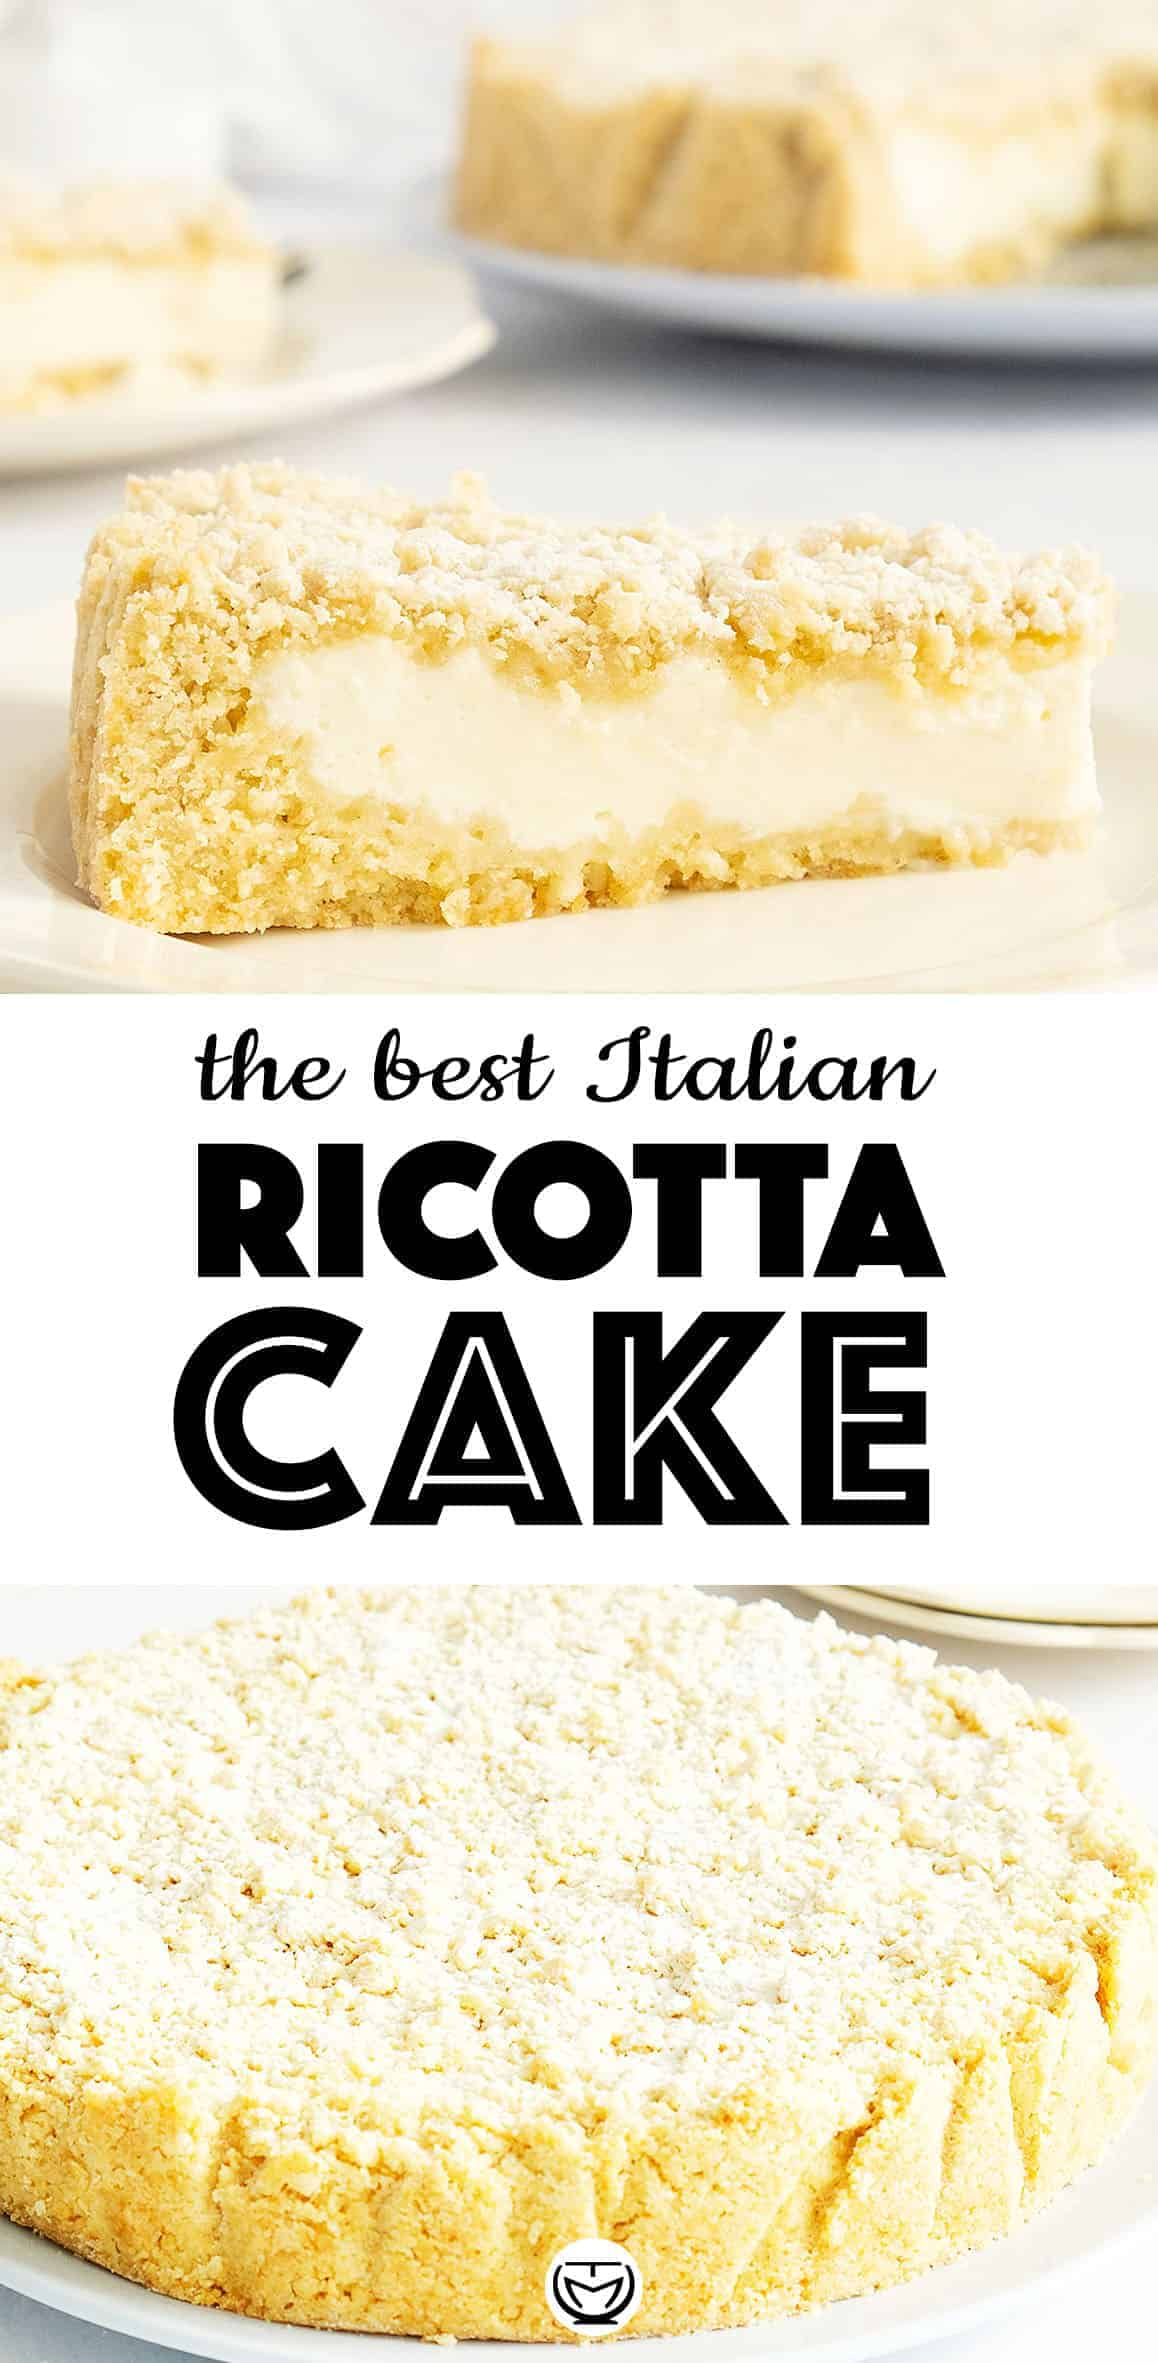 The crumbles and the delicious creamy ricotta filling with hints of lemon make this cake to die for! #cakerecipes #ricottarecipes